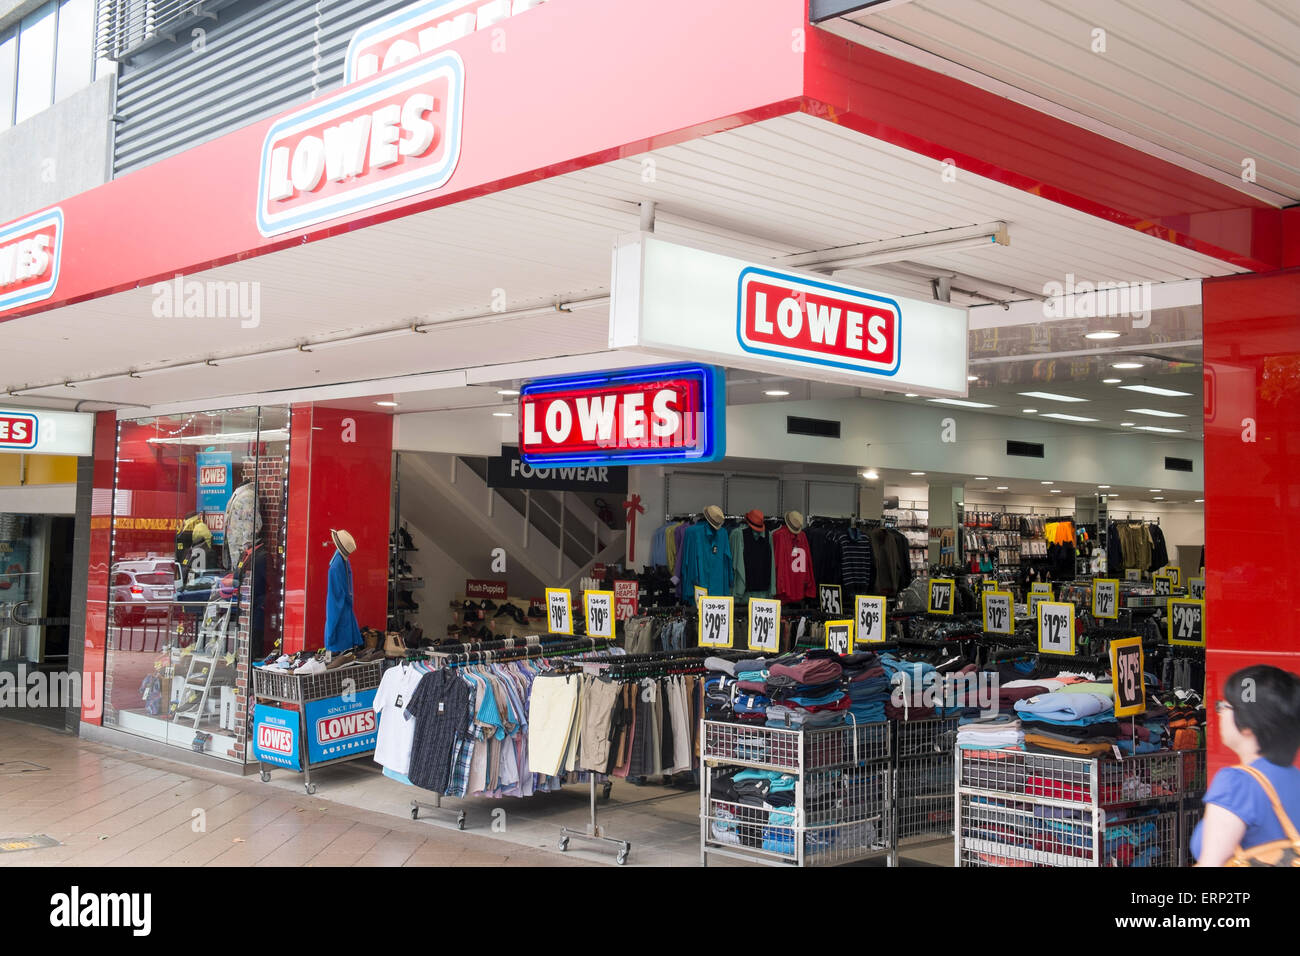 lowes discount clothing store shop in chatswood a suburb of stock photo 83463766 alamy. Black Bedroom Furniture Sets. Home Design Ideas